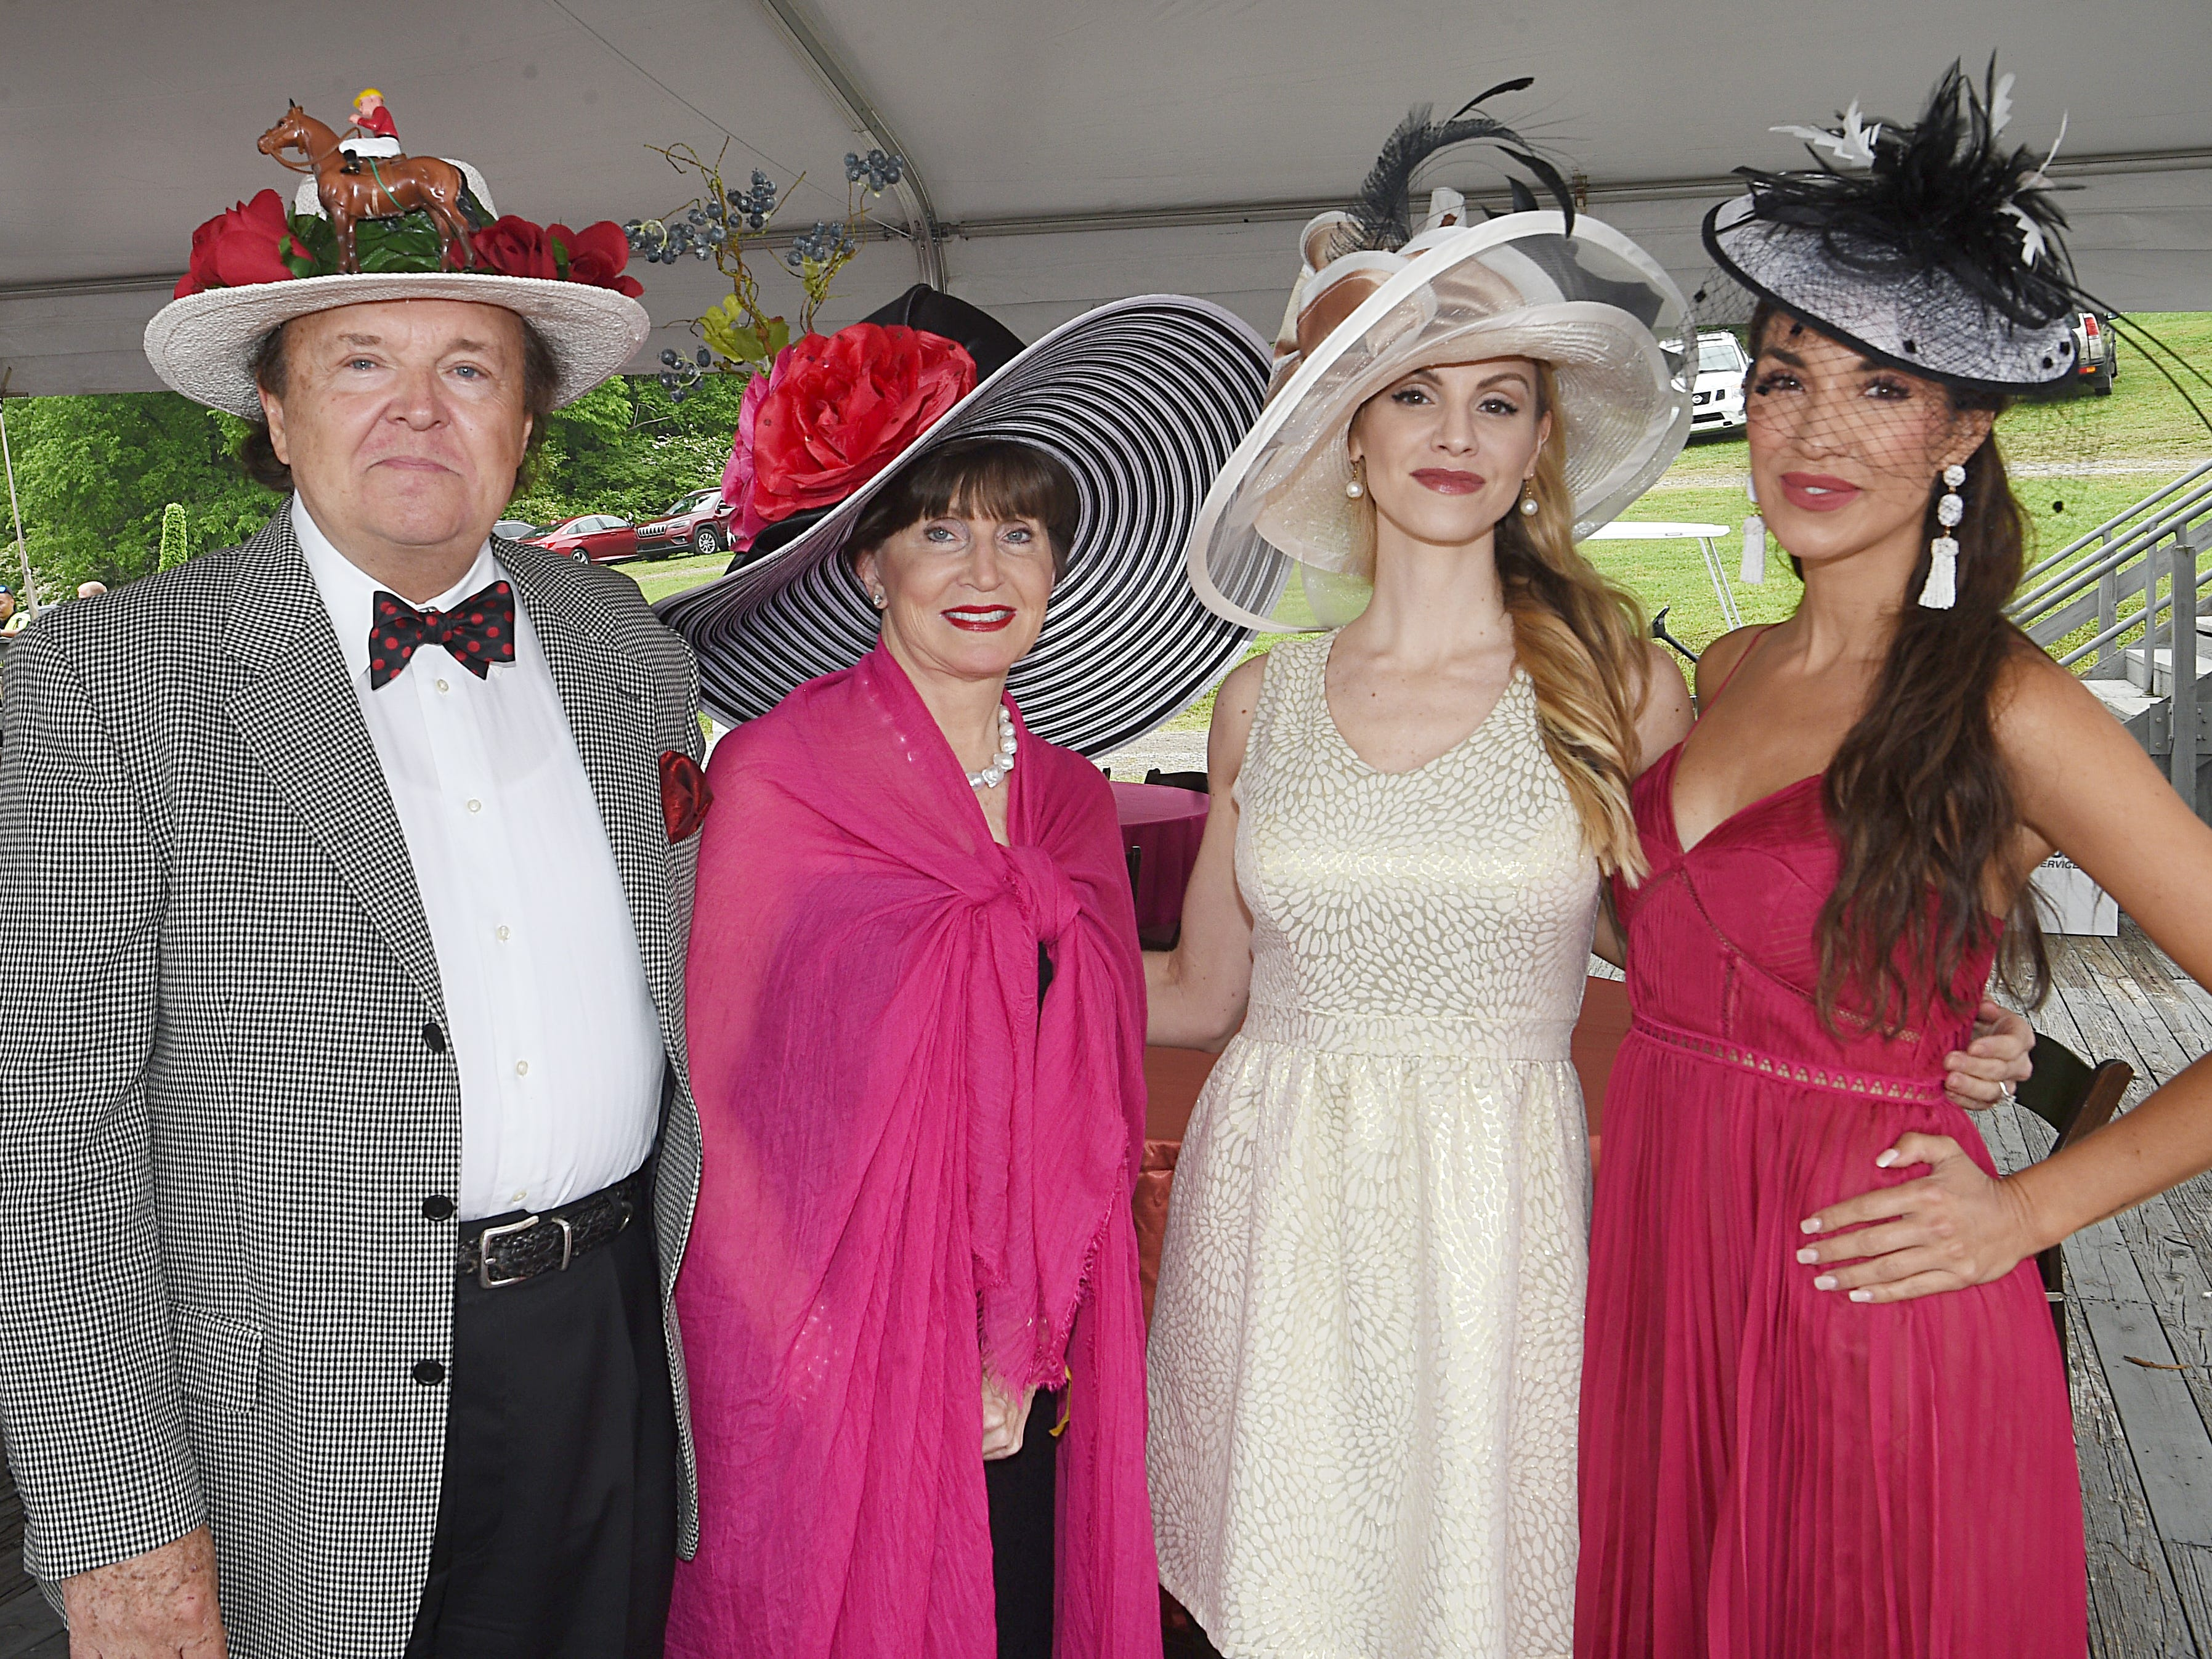 Steve Harder, Sandy McCoy, Cherly Brehm and Emily Galloway at the 78th Iroquois Steeplechase at Percy Warner park in Nashville on Saturday, May, 11, 2019.